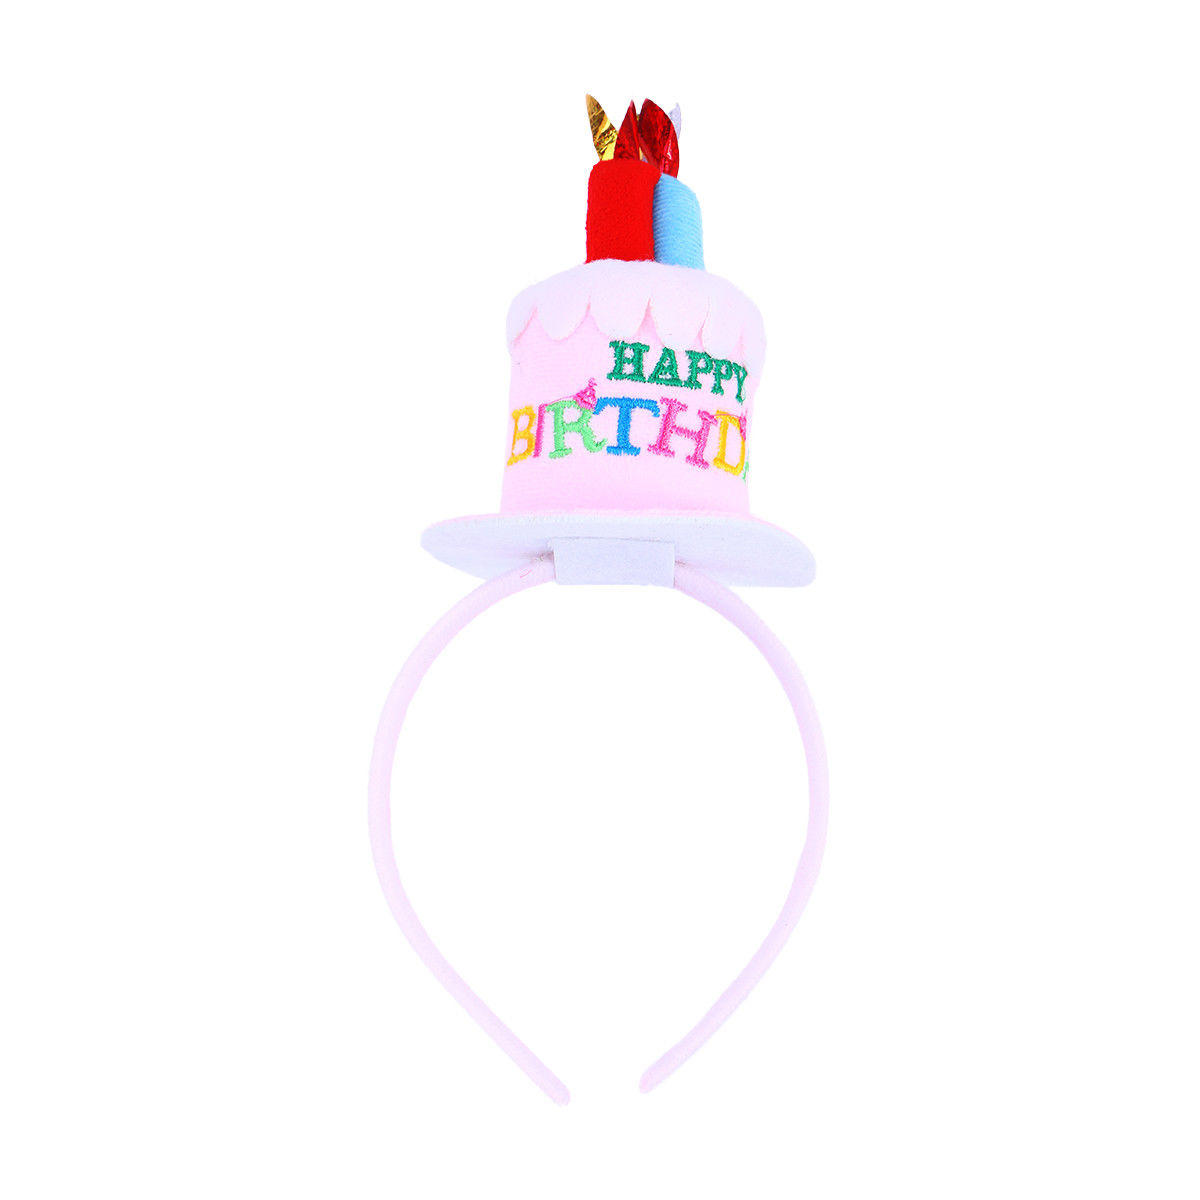 Funny Happy Birthday Cake Candles Headband Women Lady Girls Party Hair Band Gift